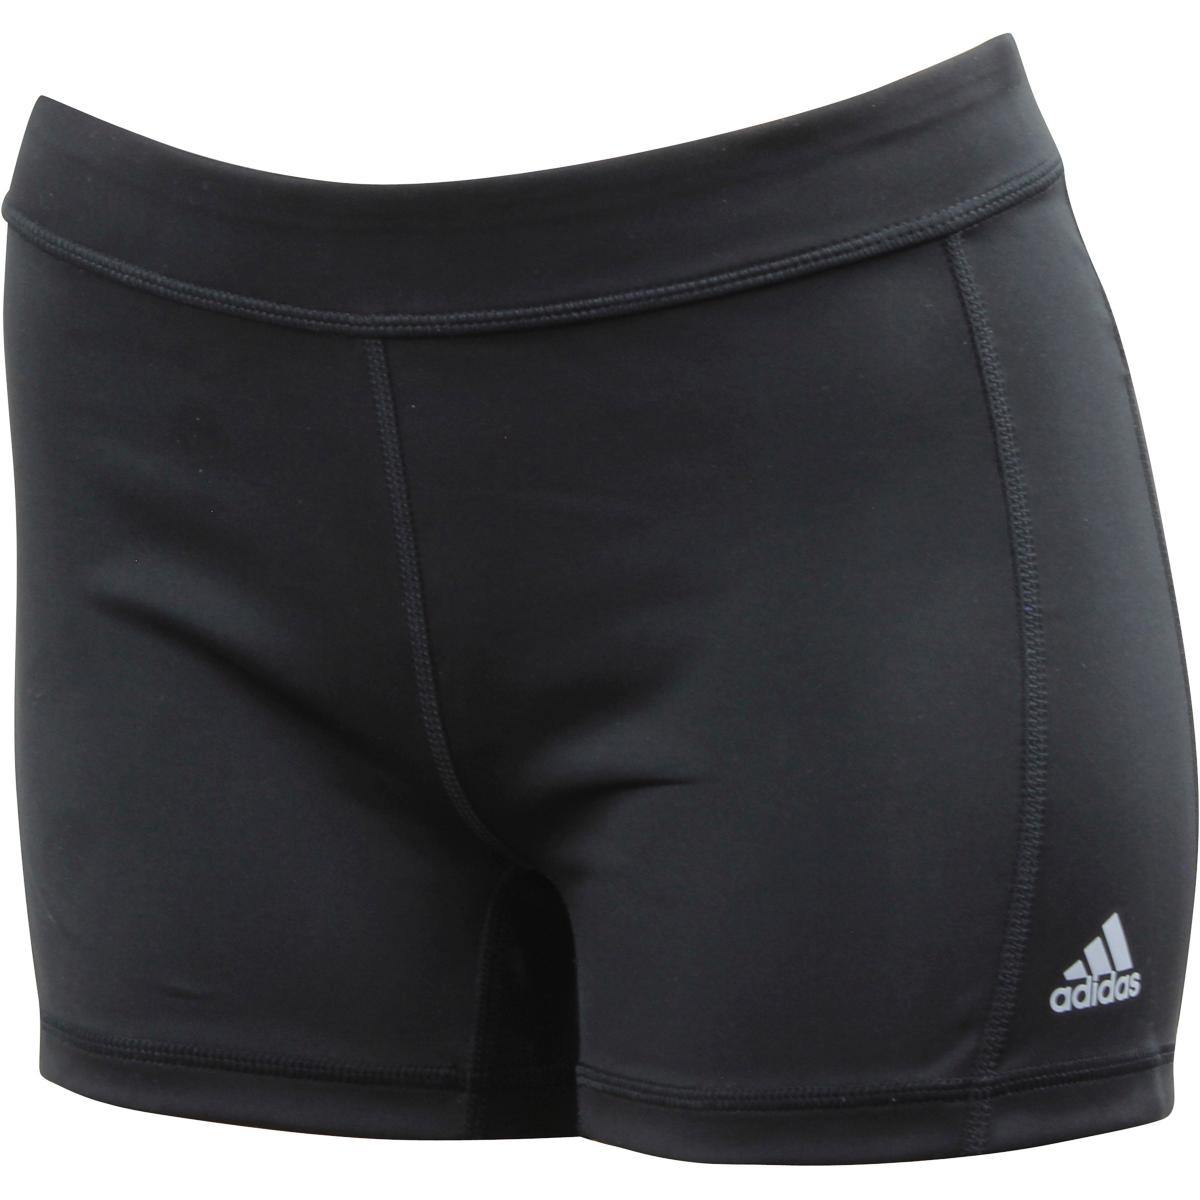 Adidas Techfit Boyshort Black/White/Matte Silver Stretch Climalite Shorts Techfit Boyshort; AJ2225